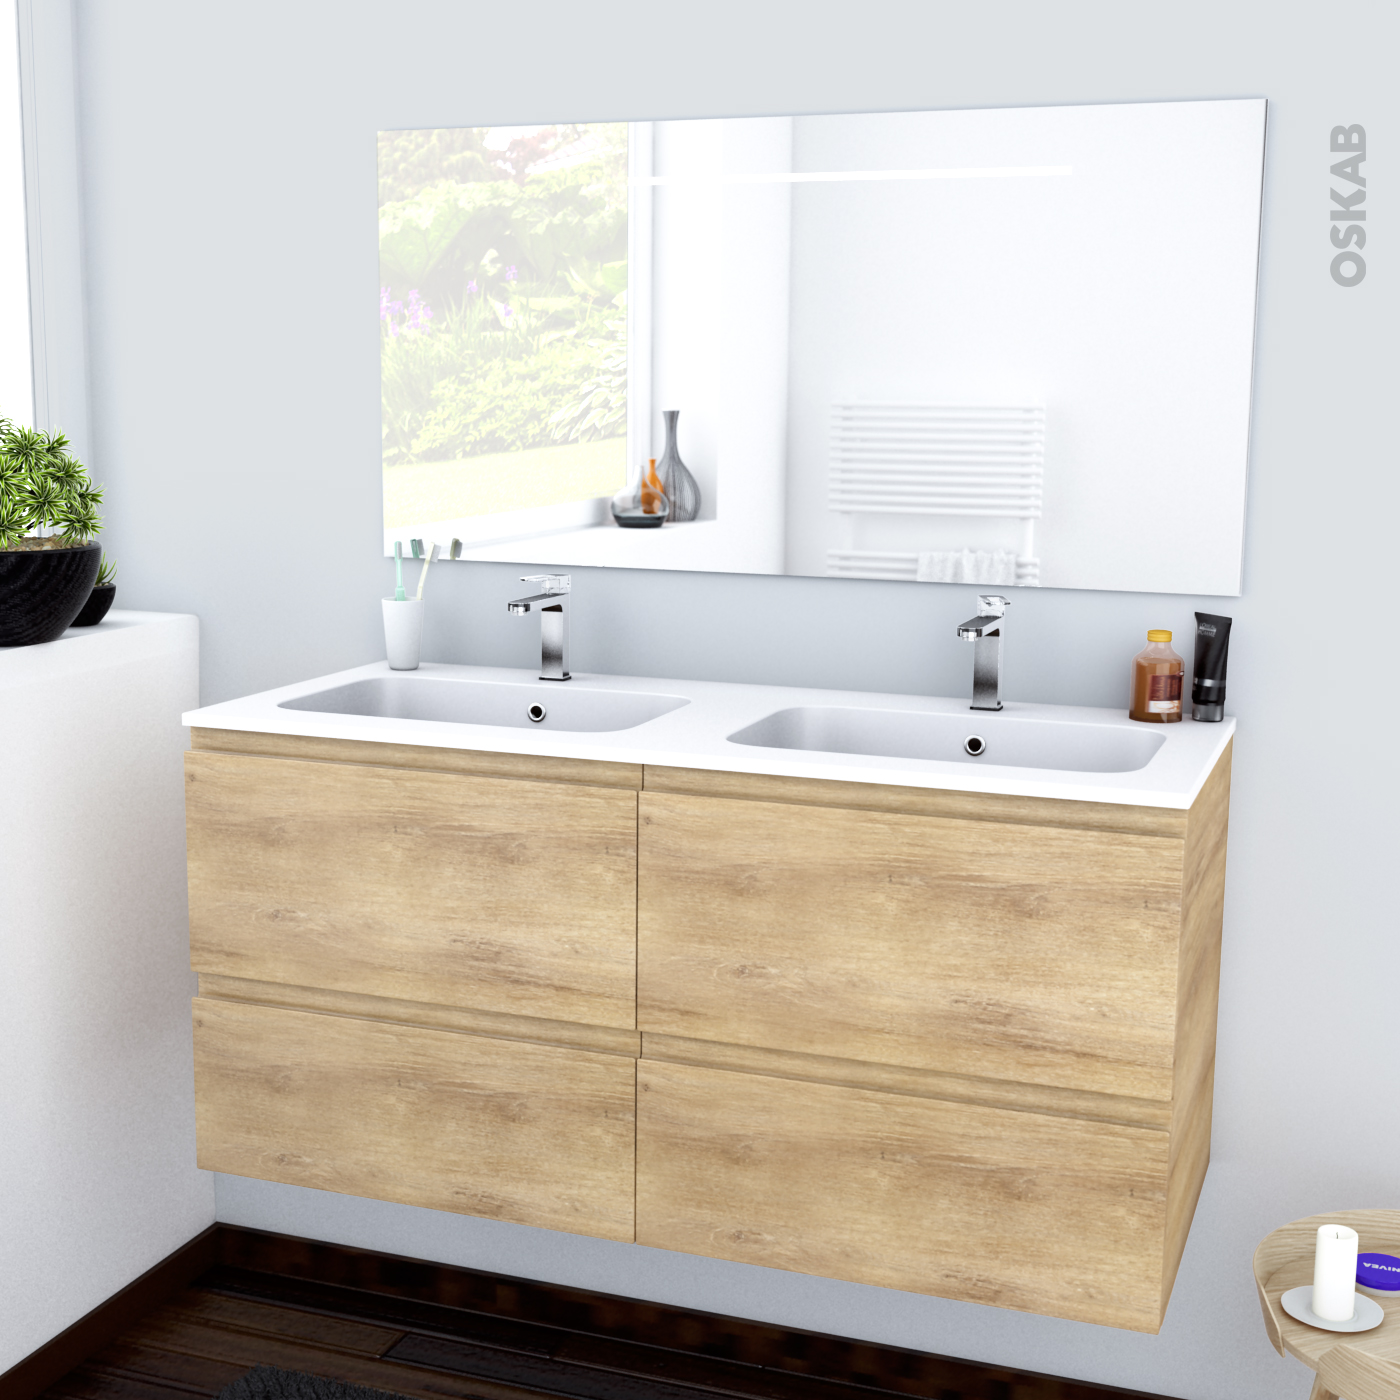 Lavabo double vasque retro simple beliani meuble meubles for Vasque en resine salle de bain